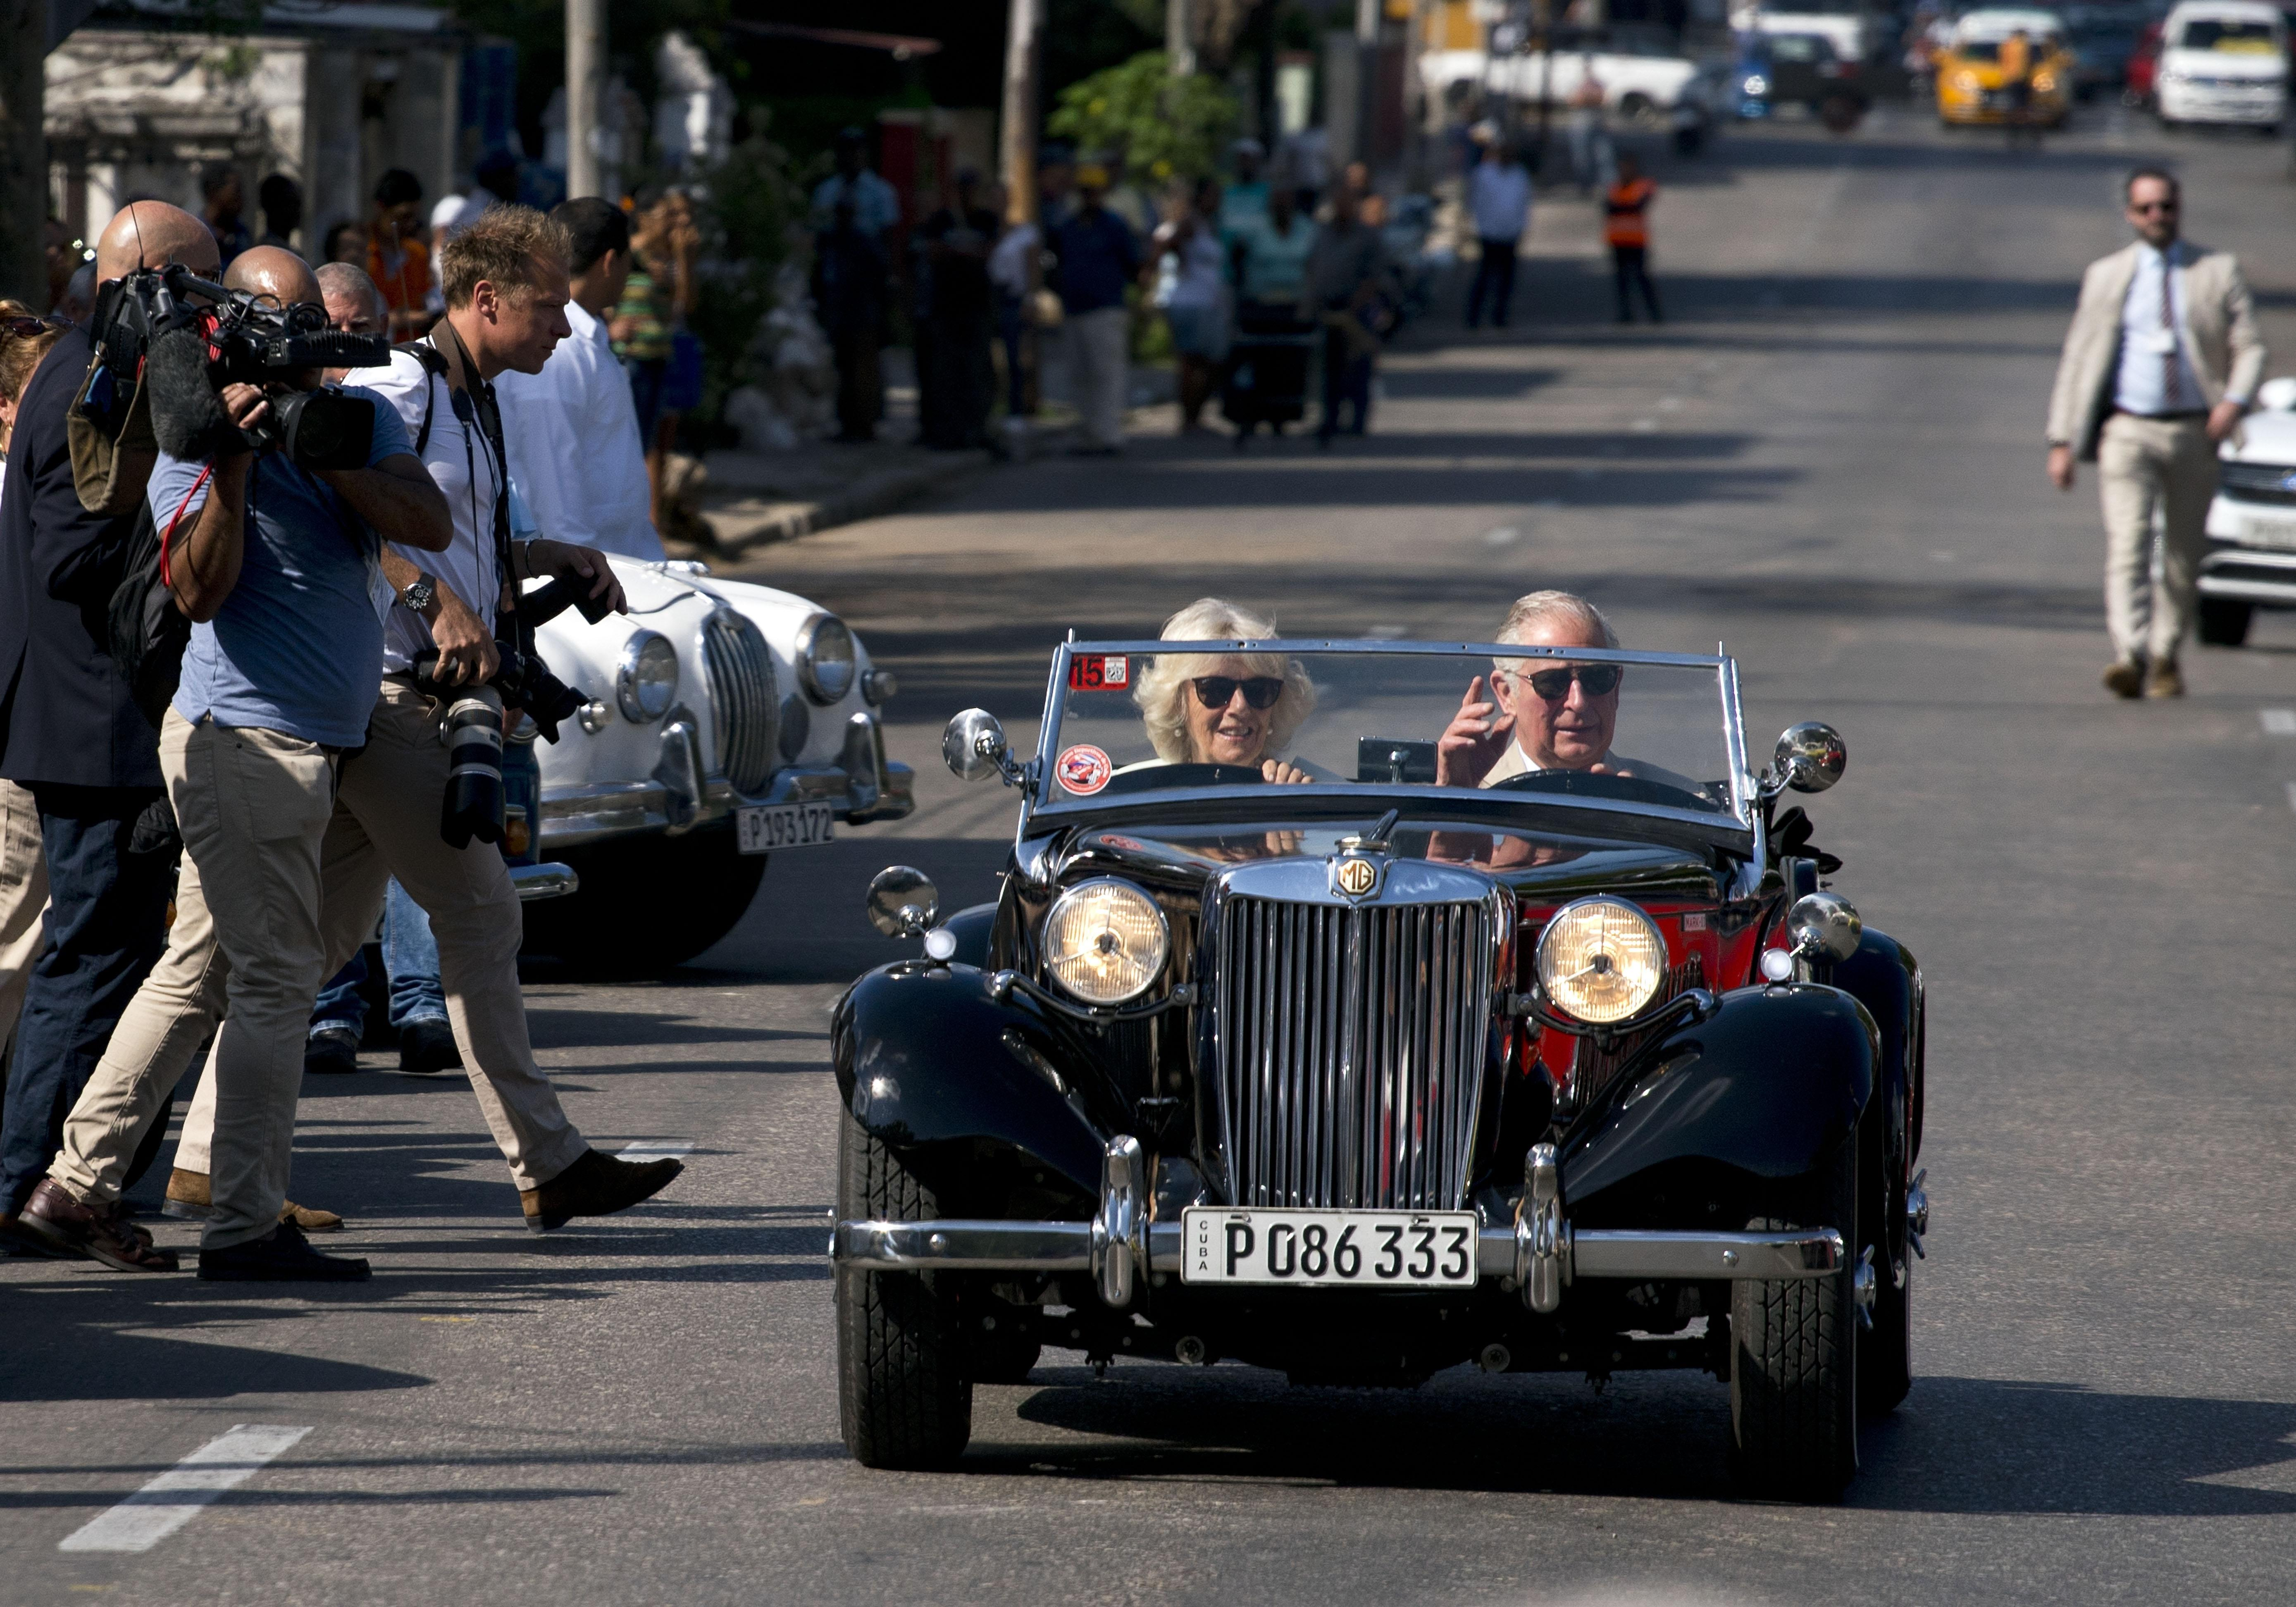 Royal couple visit UK-linked sites on second day in Cuba